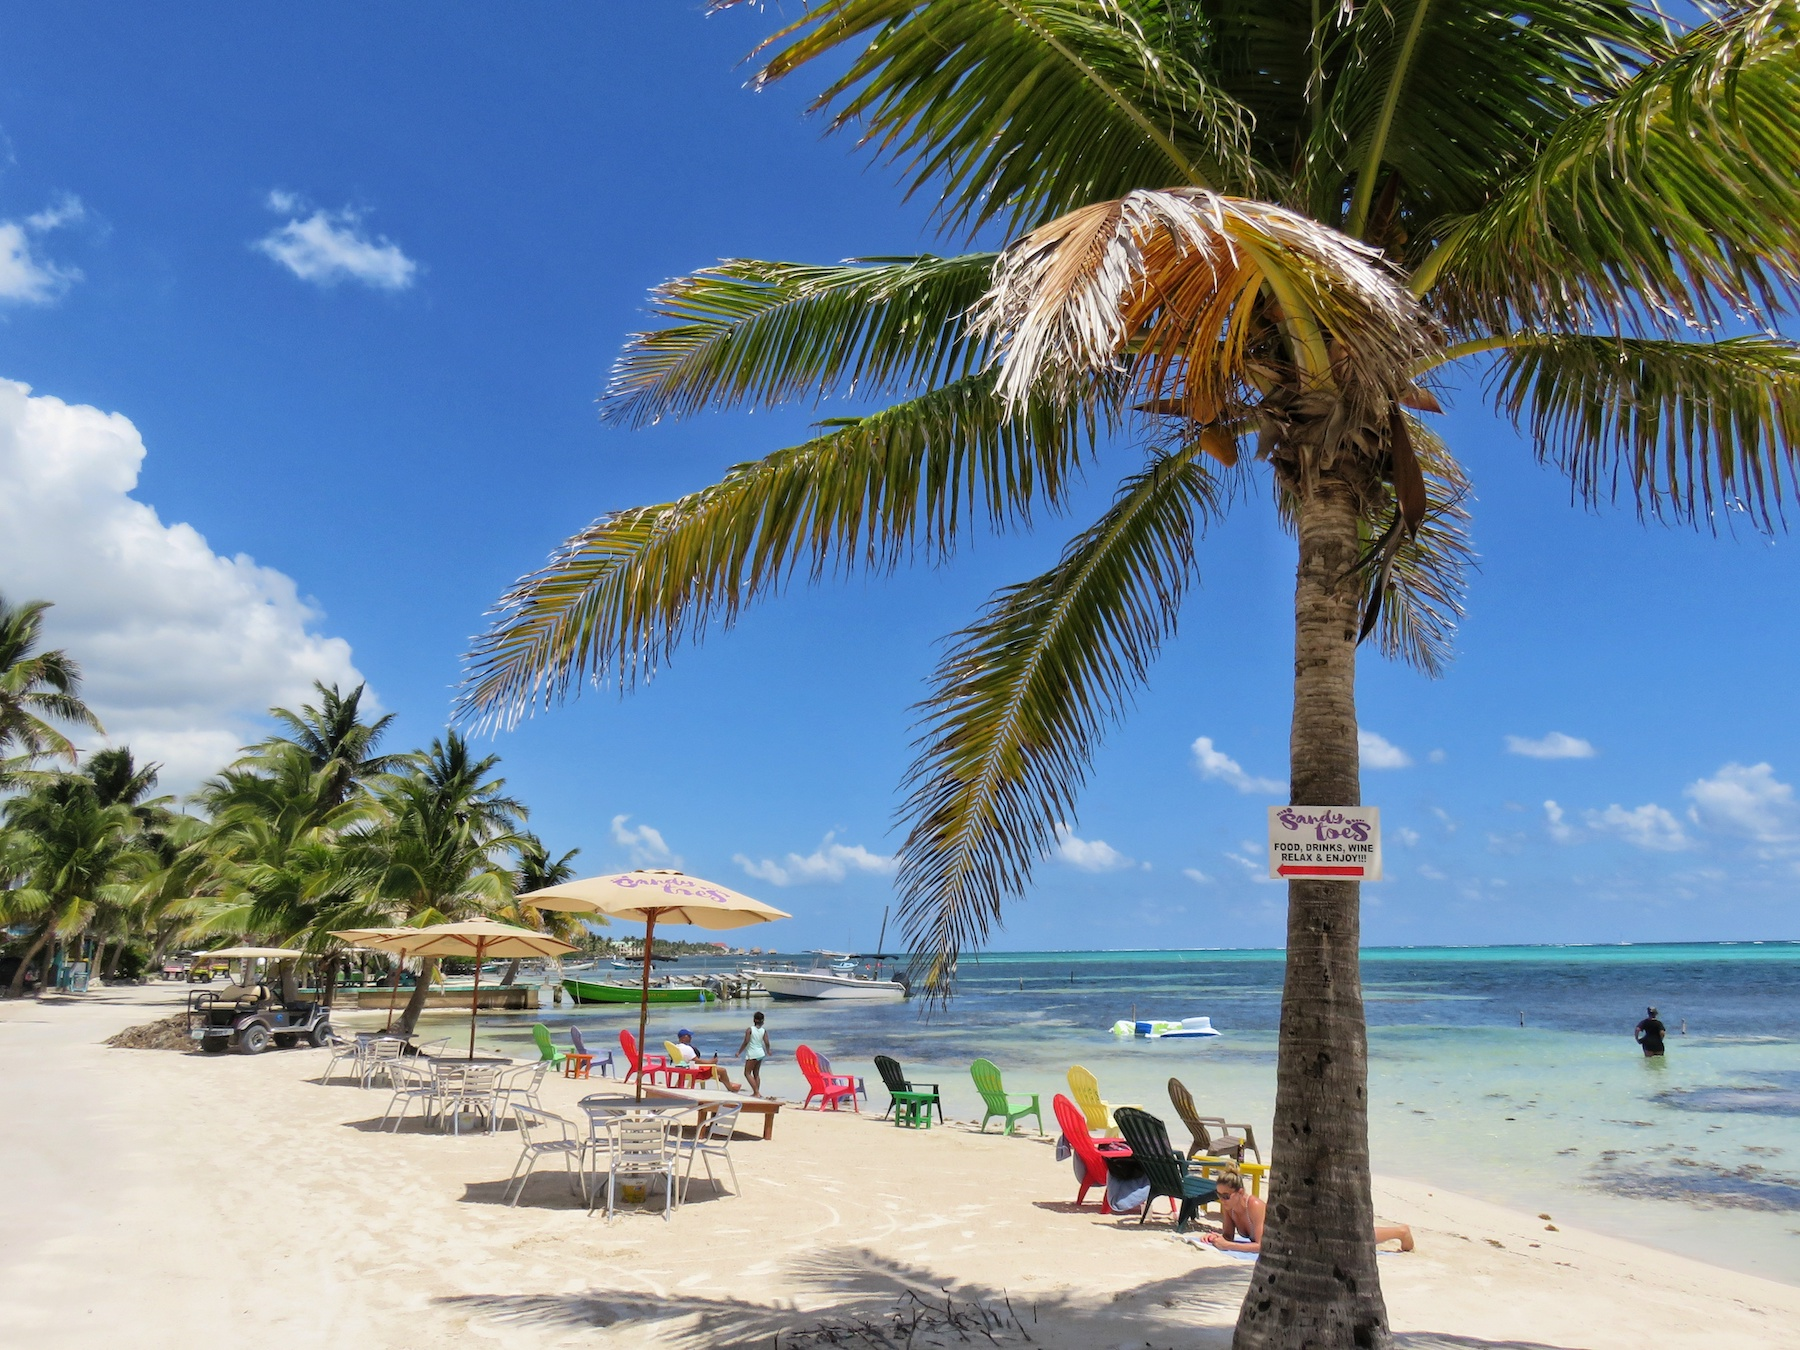 Dive Center For Sale - Successful, well established Belize official PADI Dive Center 5* TripAdvisor Rating